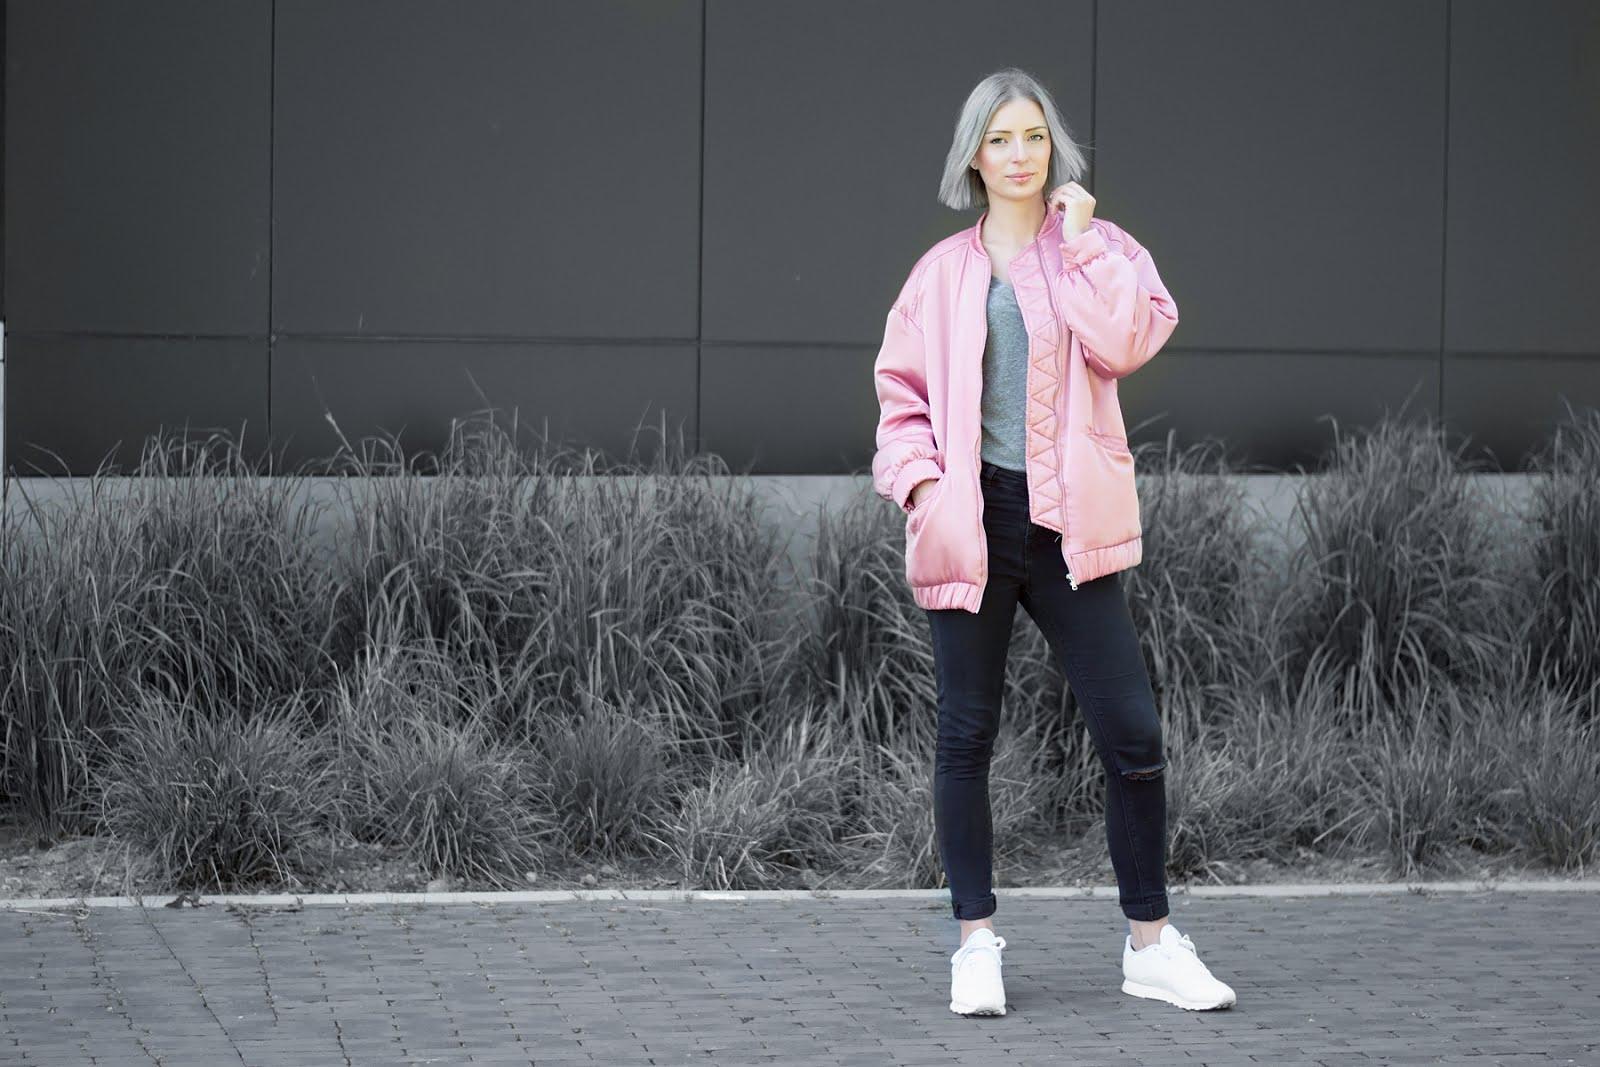 Mango pink satin oversized bomber jacket, h&m divided basic v neck tshirt in grey, asos ridley skinny jeans, reebok classic white sneakers, outfit